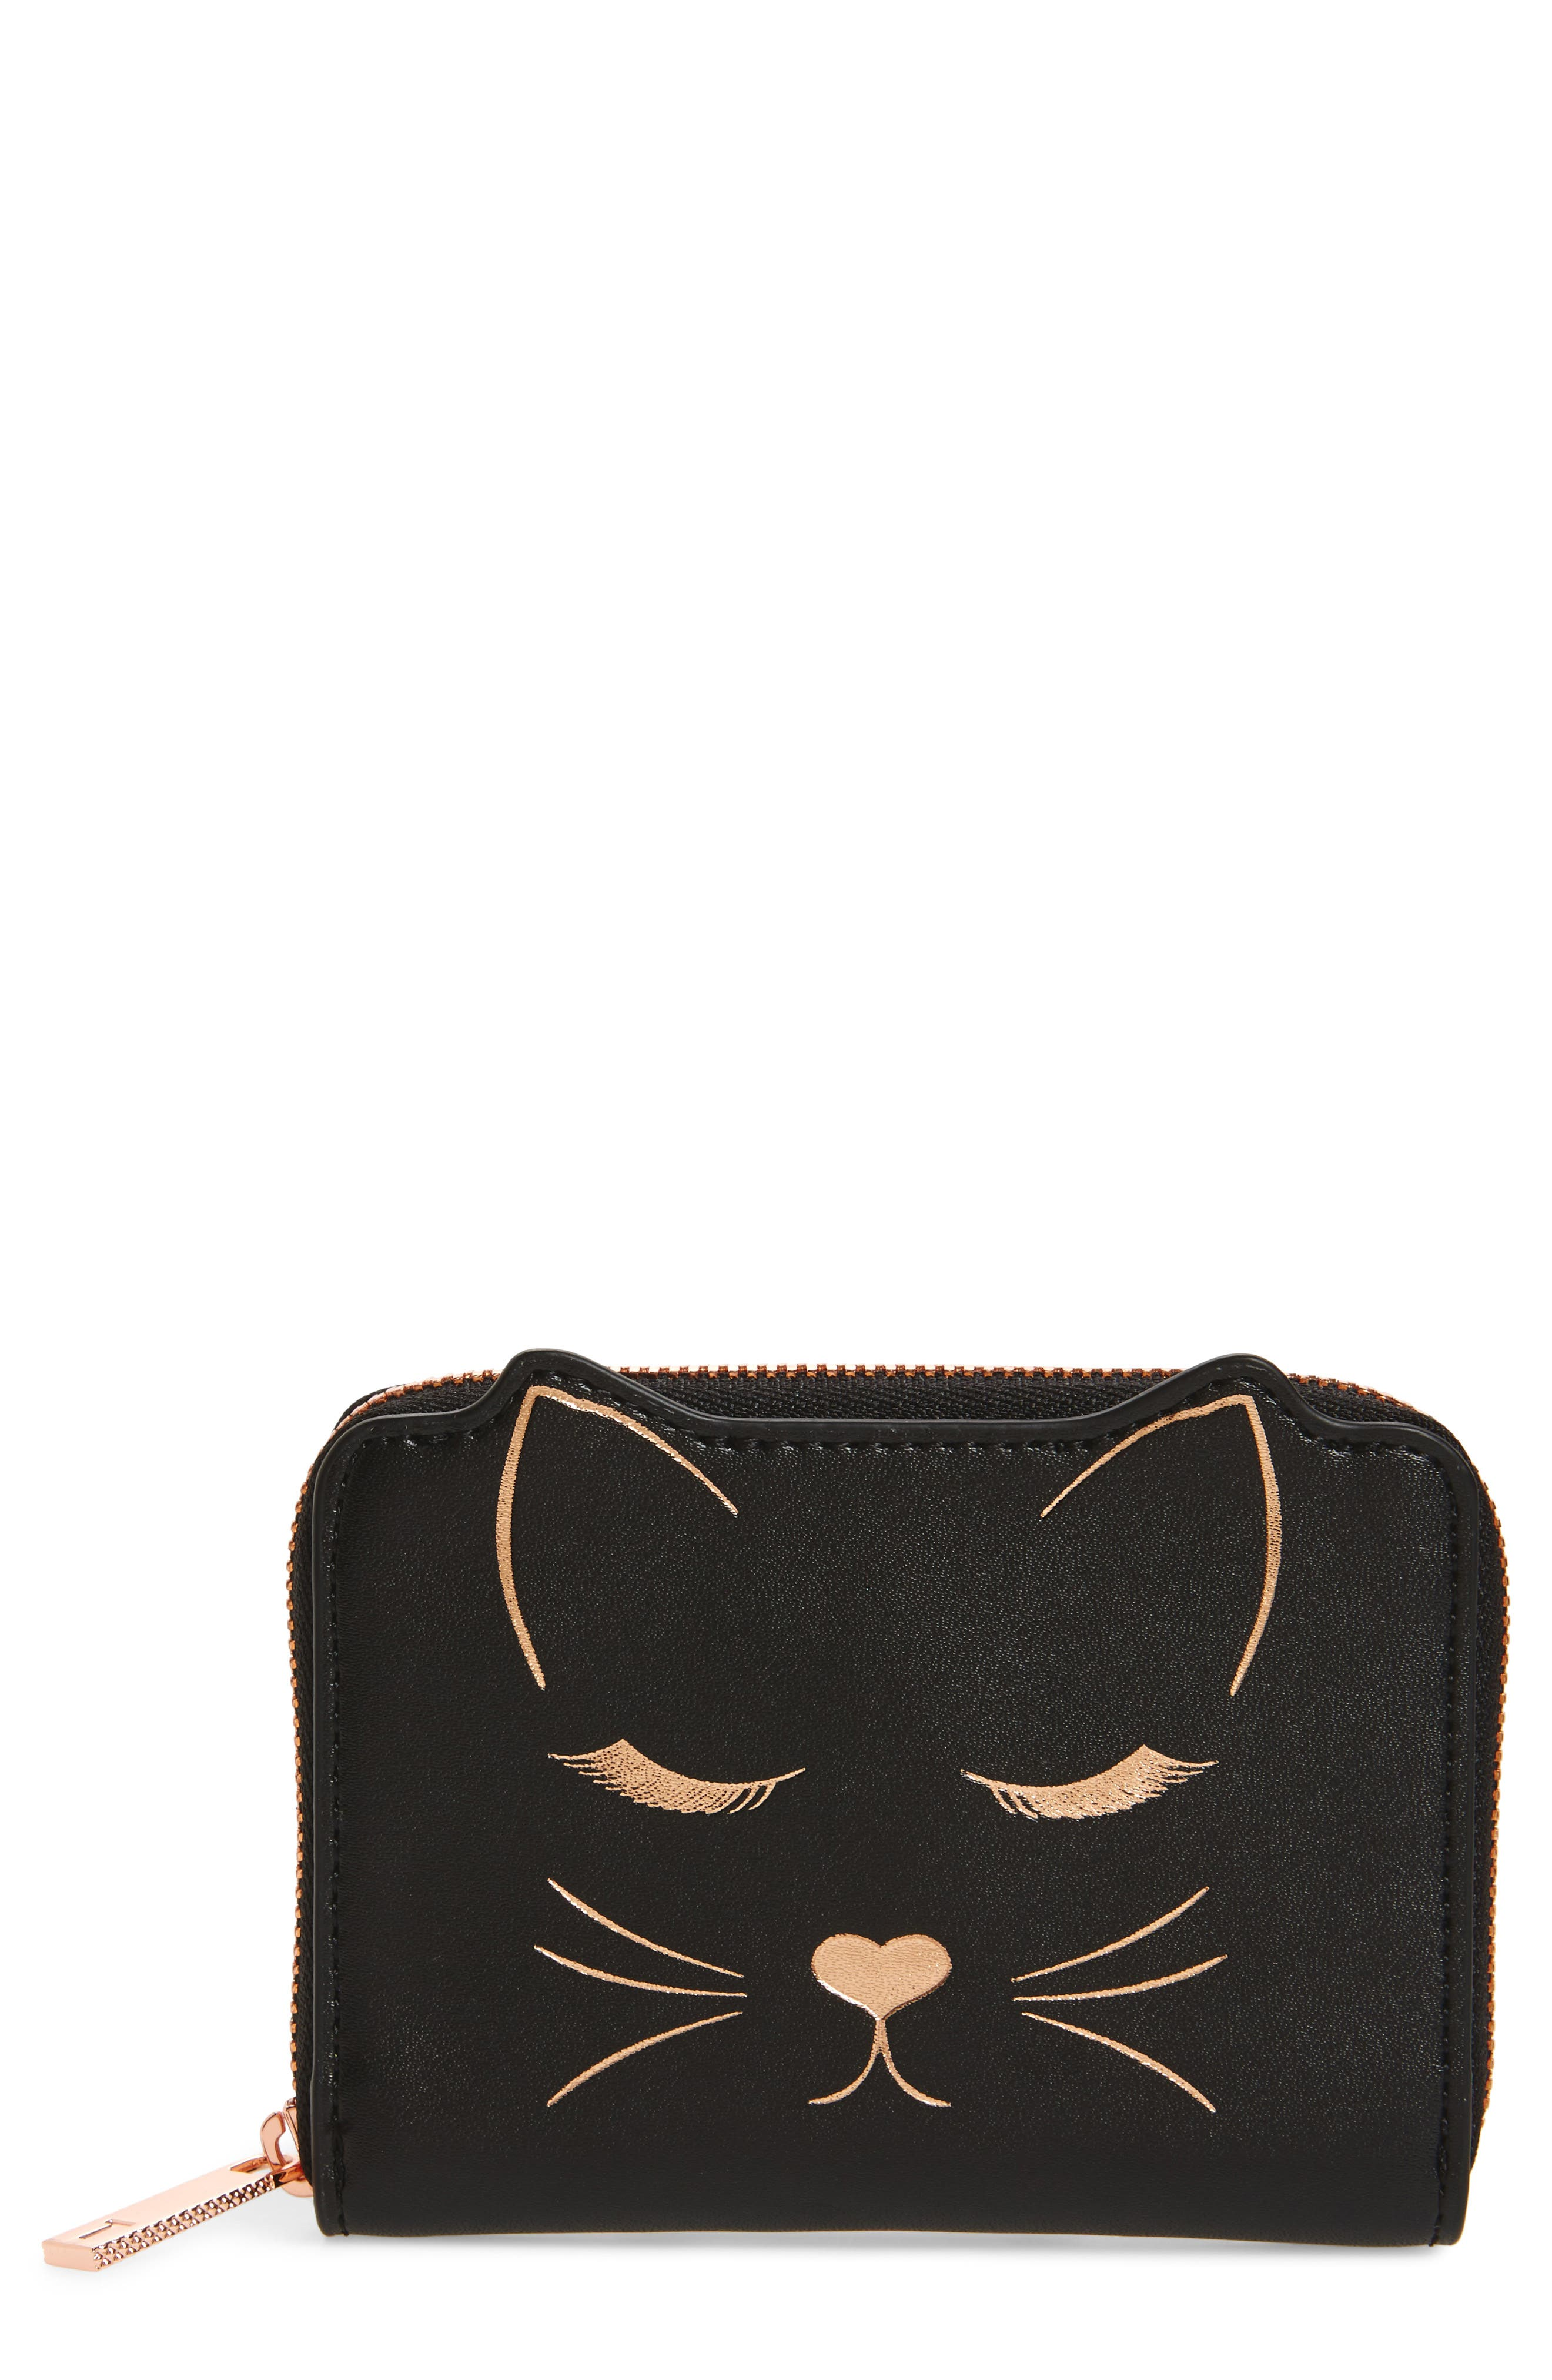 Main Image - Ted Baker London Zip Around Leather Wallet